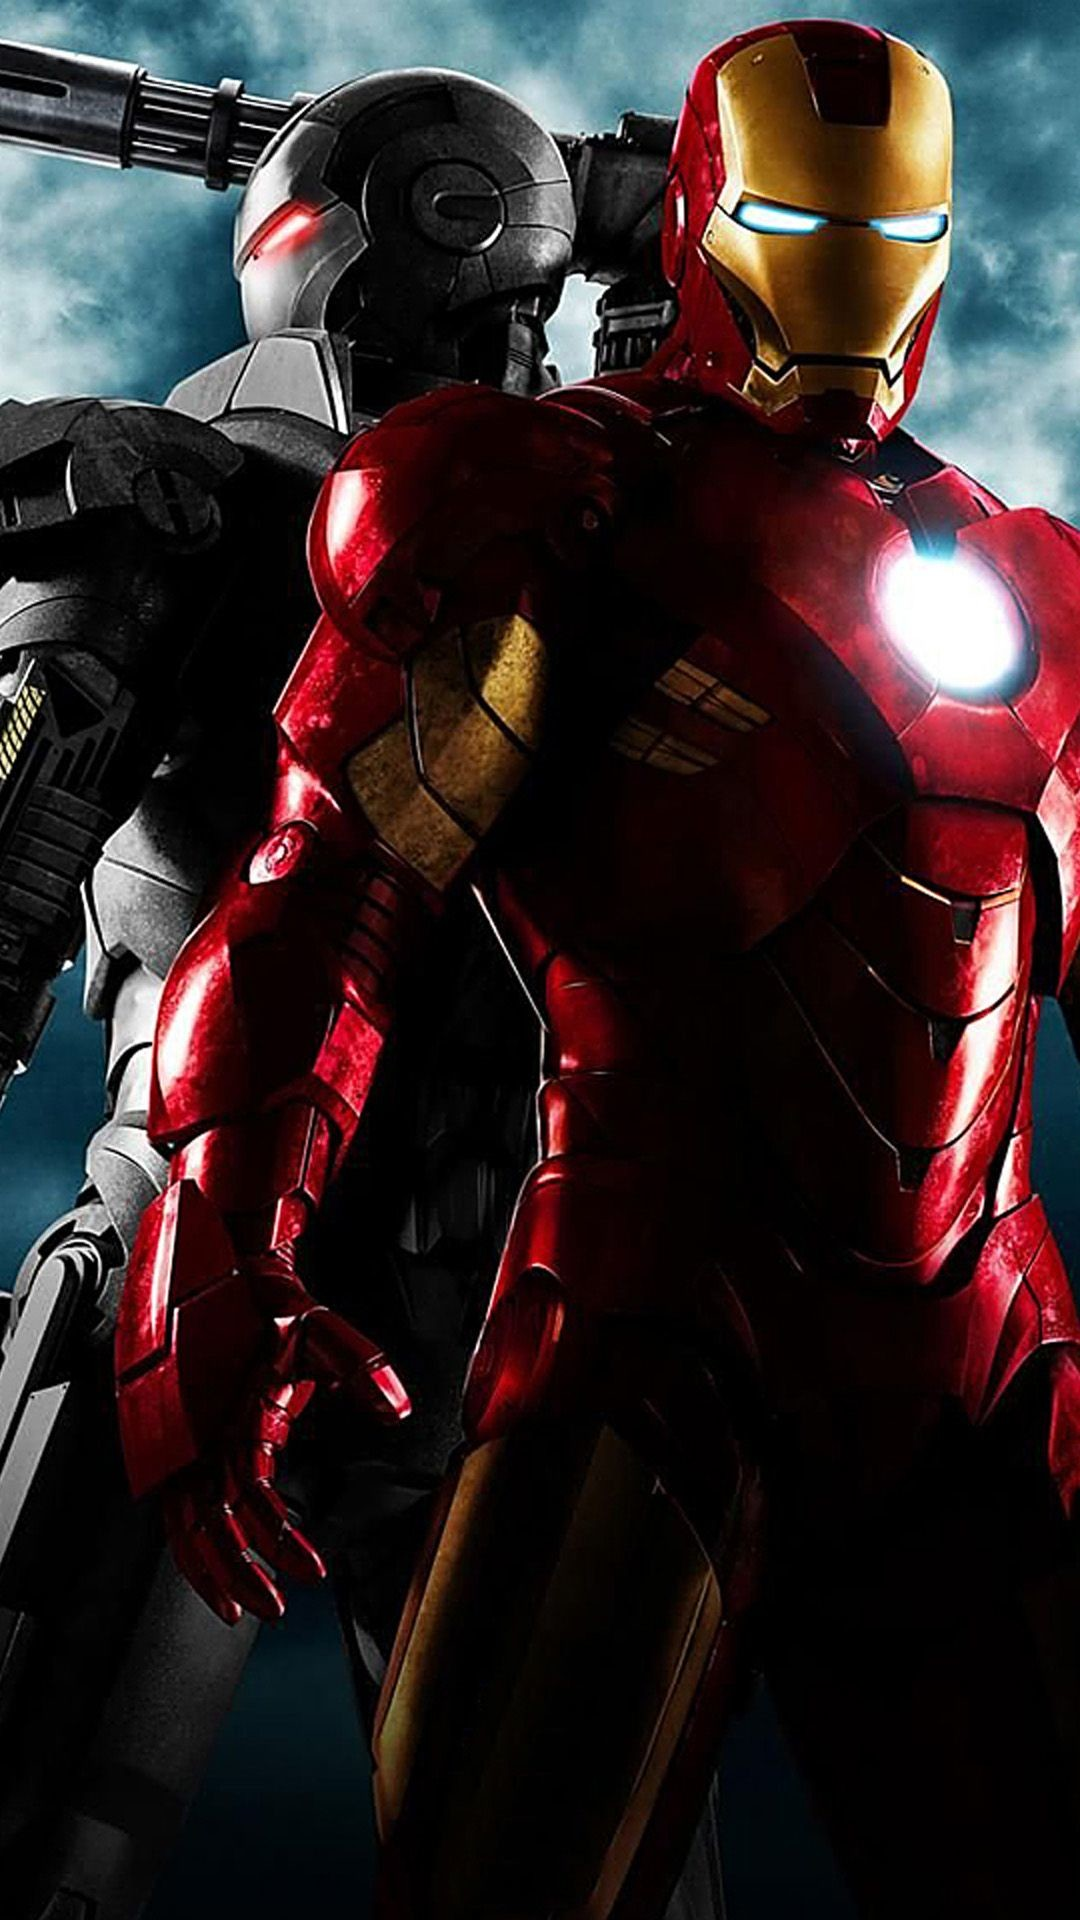 Res: 1080x1920, Iron Man Wallpapers Hd (24)